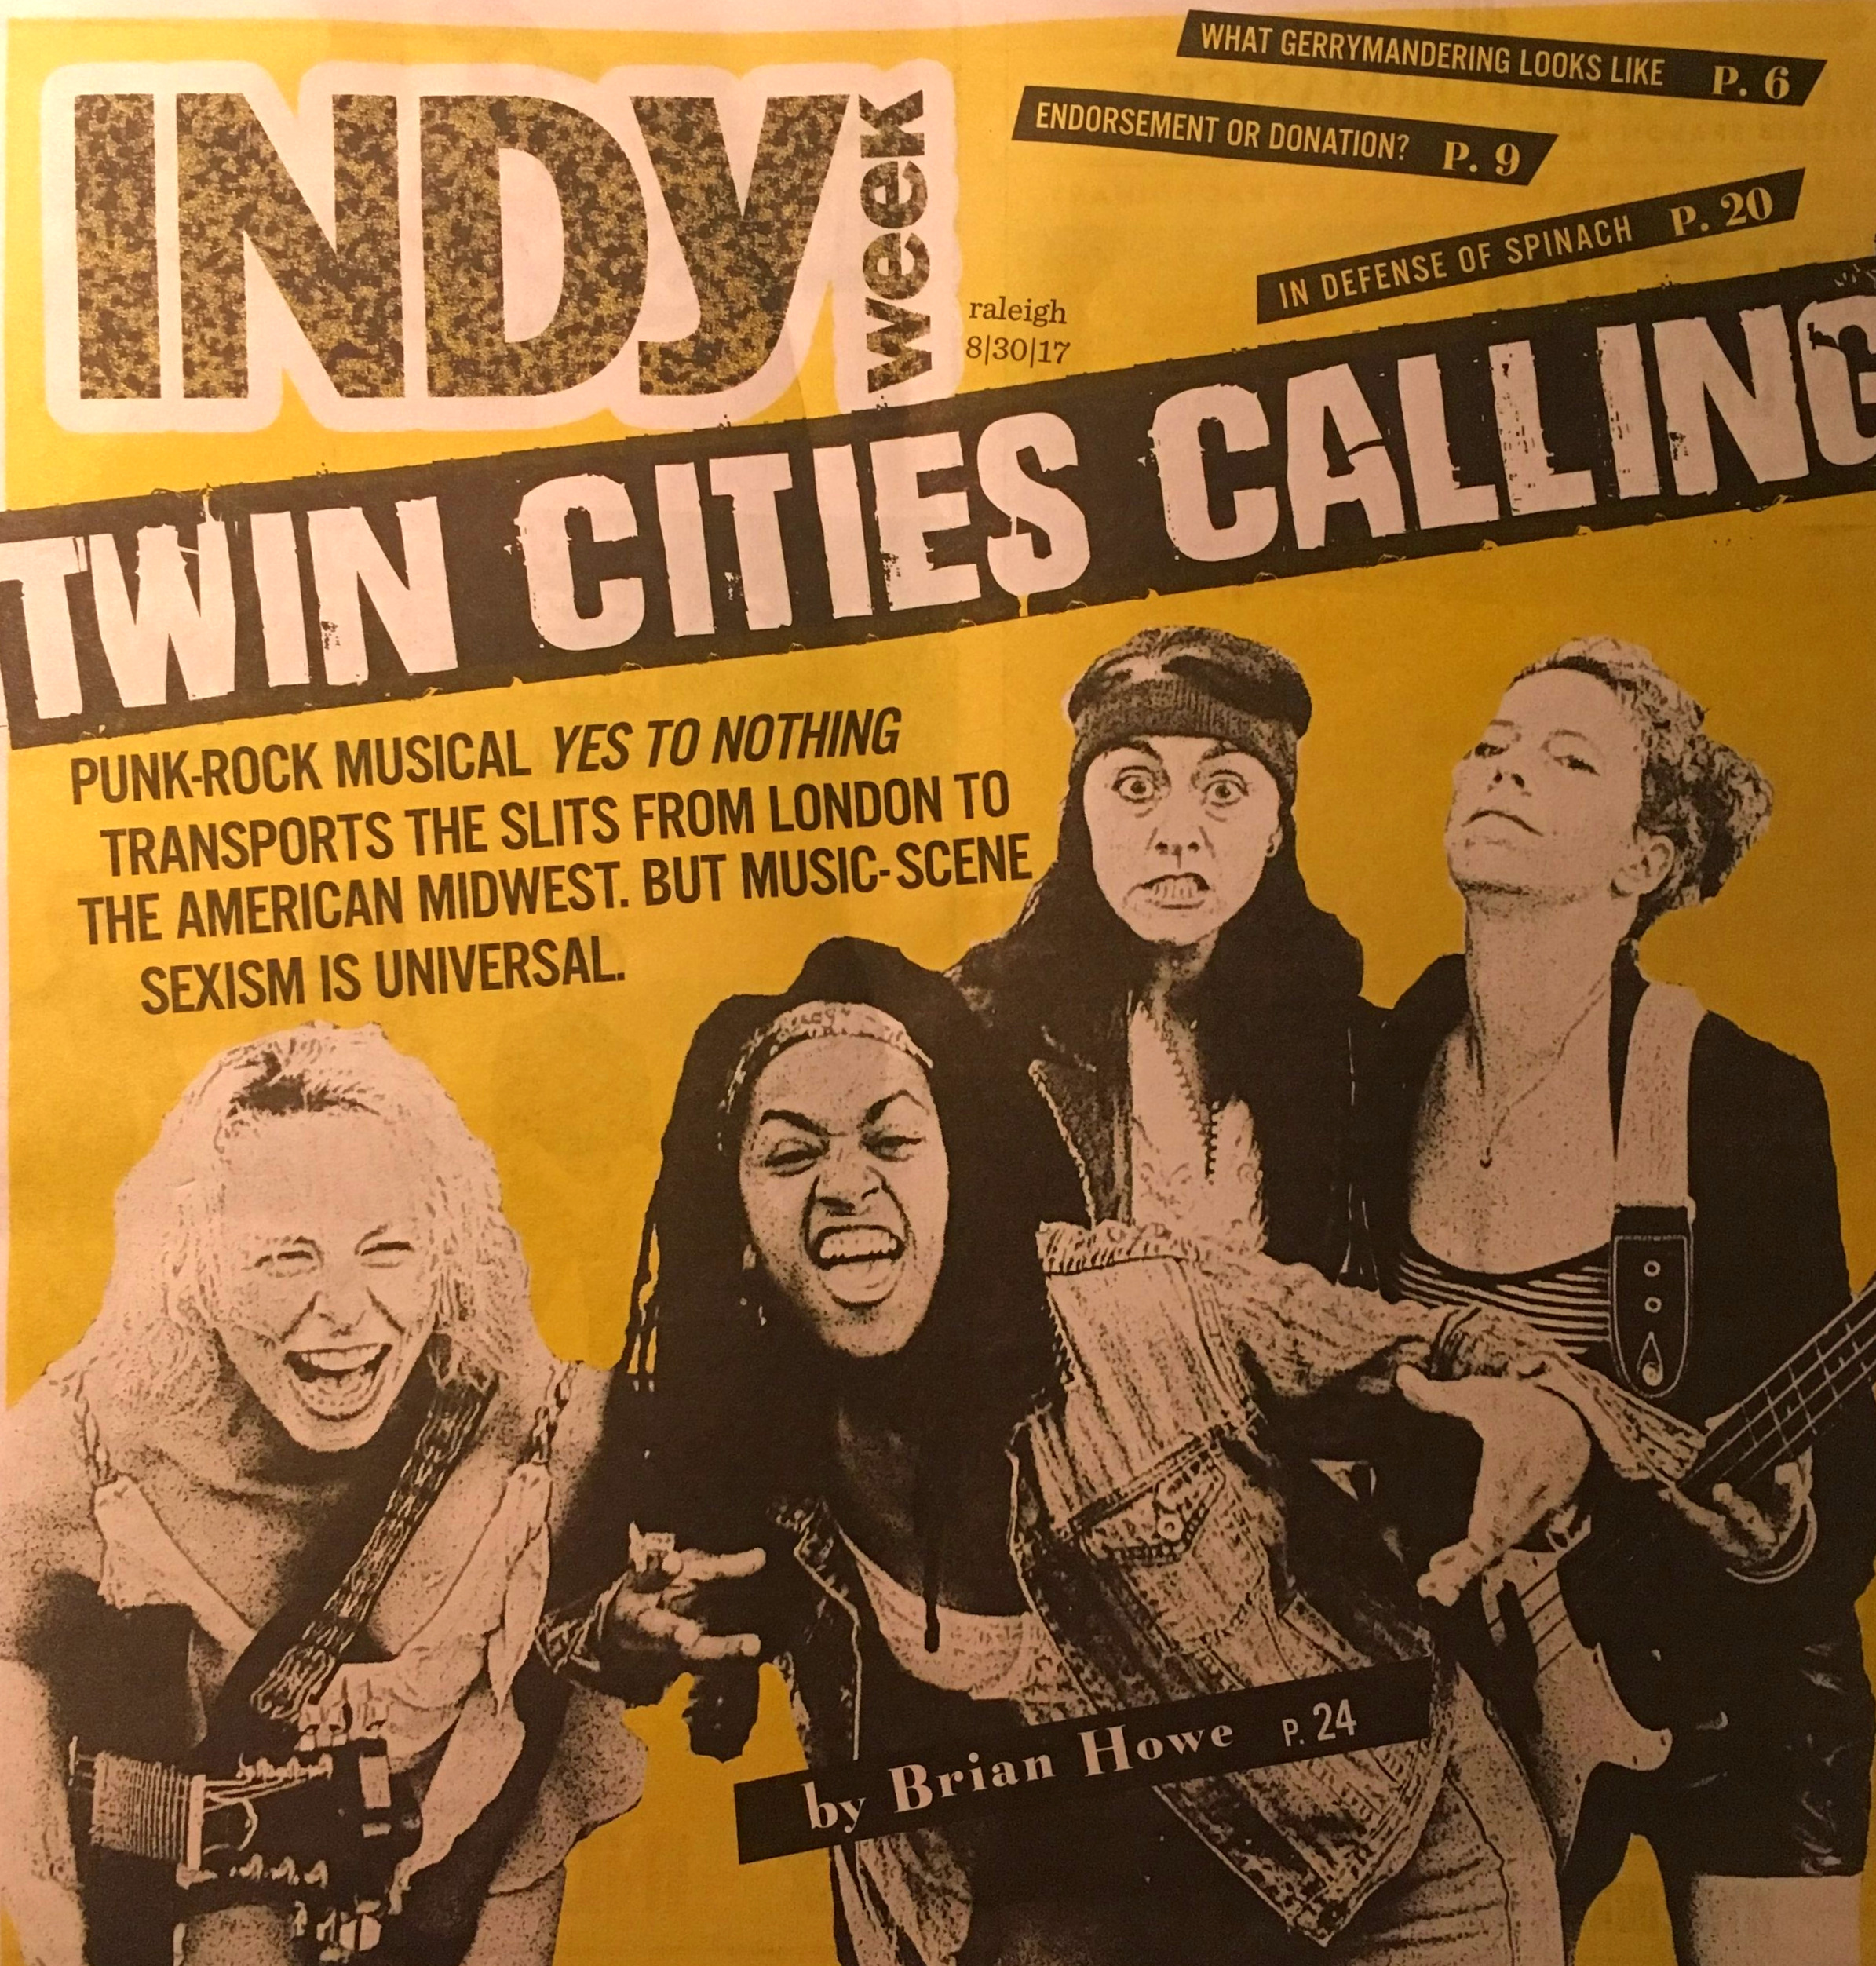 """Dana Marks, Drina Dunlap, Edith Snow, and Jessica Hudson on the Indy Week cover for the punk rock musical, """"Yes to Nothing."""""""